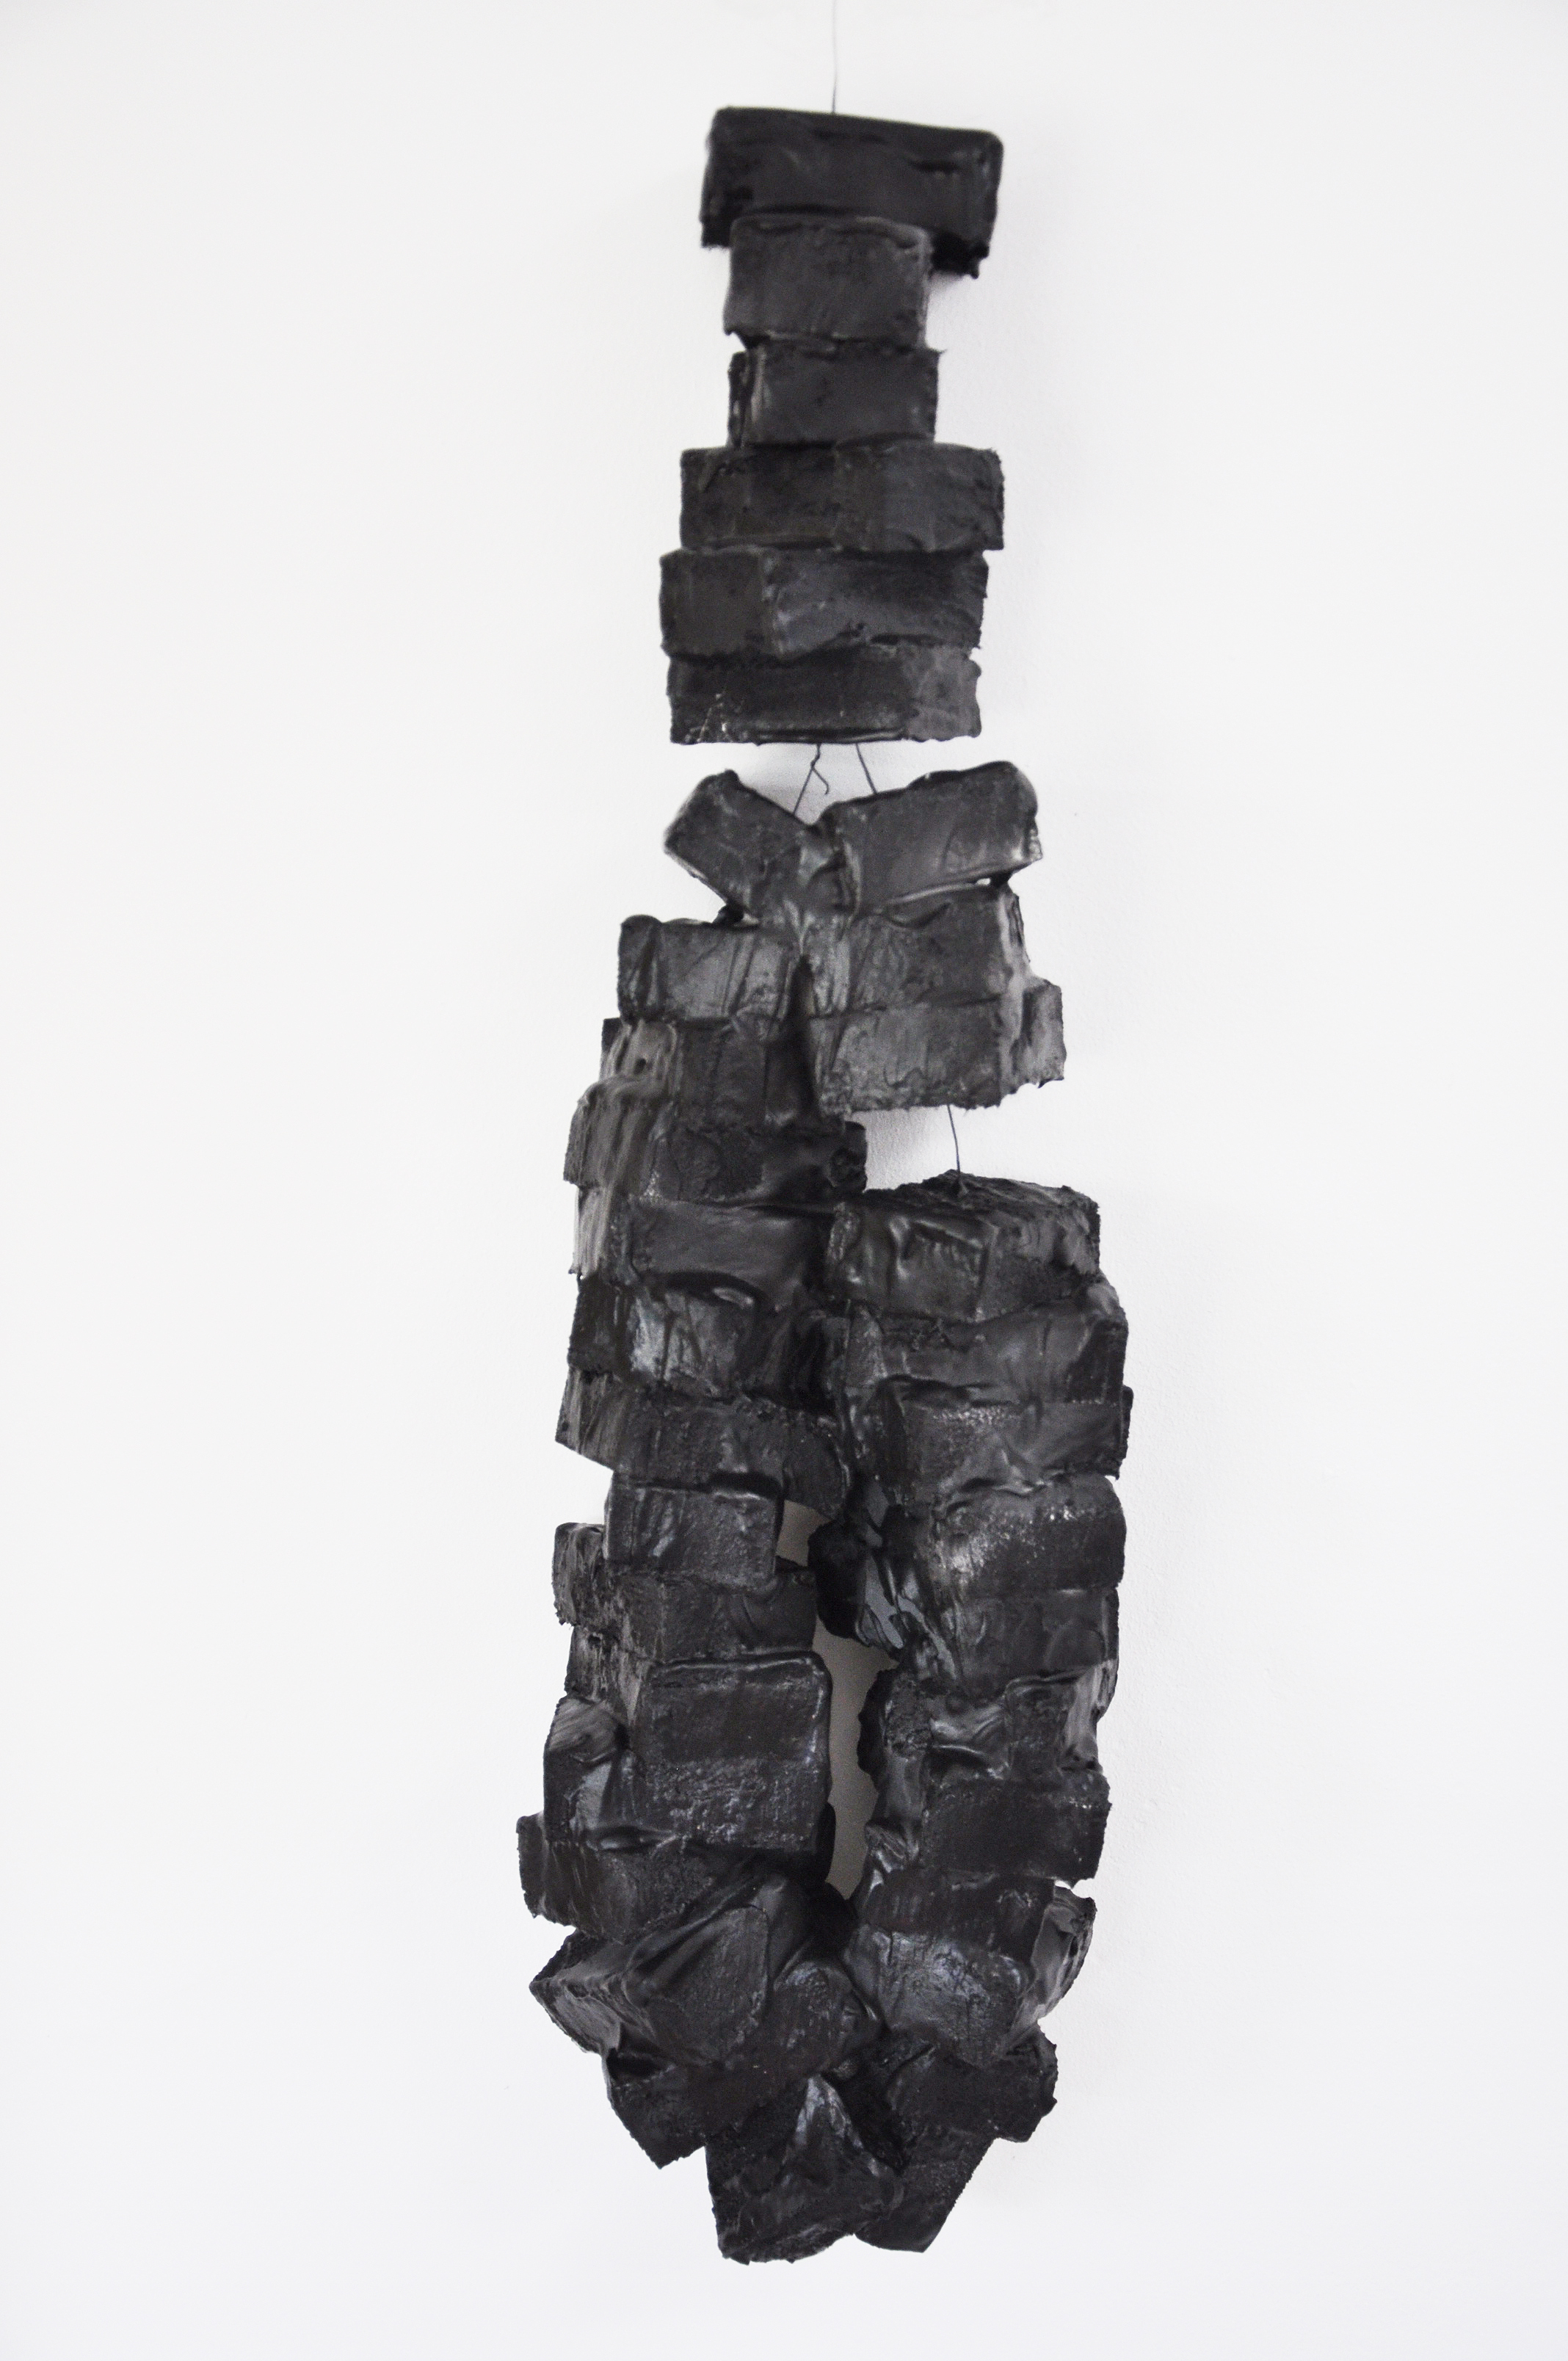 Black Blocks of Sensations, iron, paint, plaster, plastic, Ca 80 x 21 x 12 cm, 2009